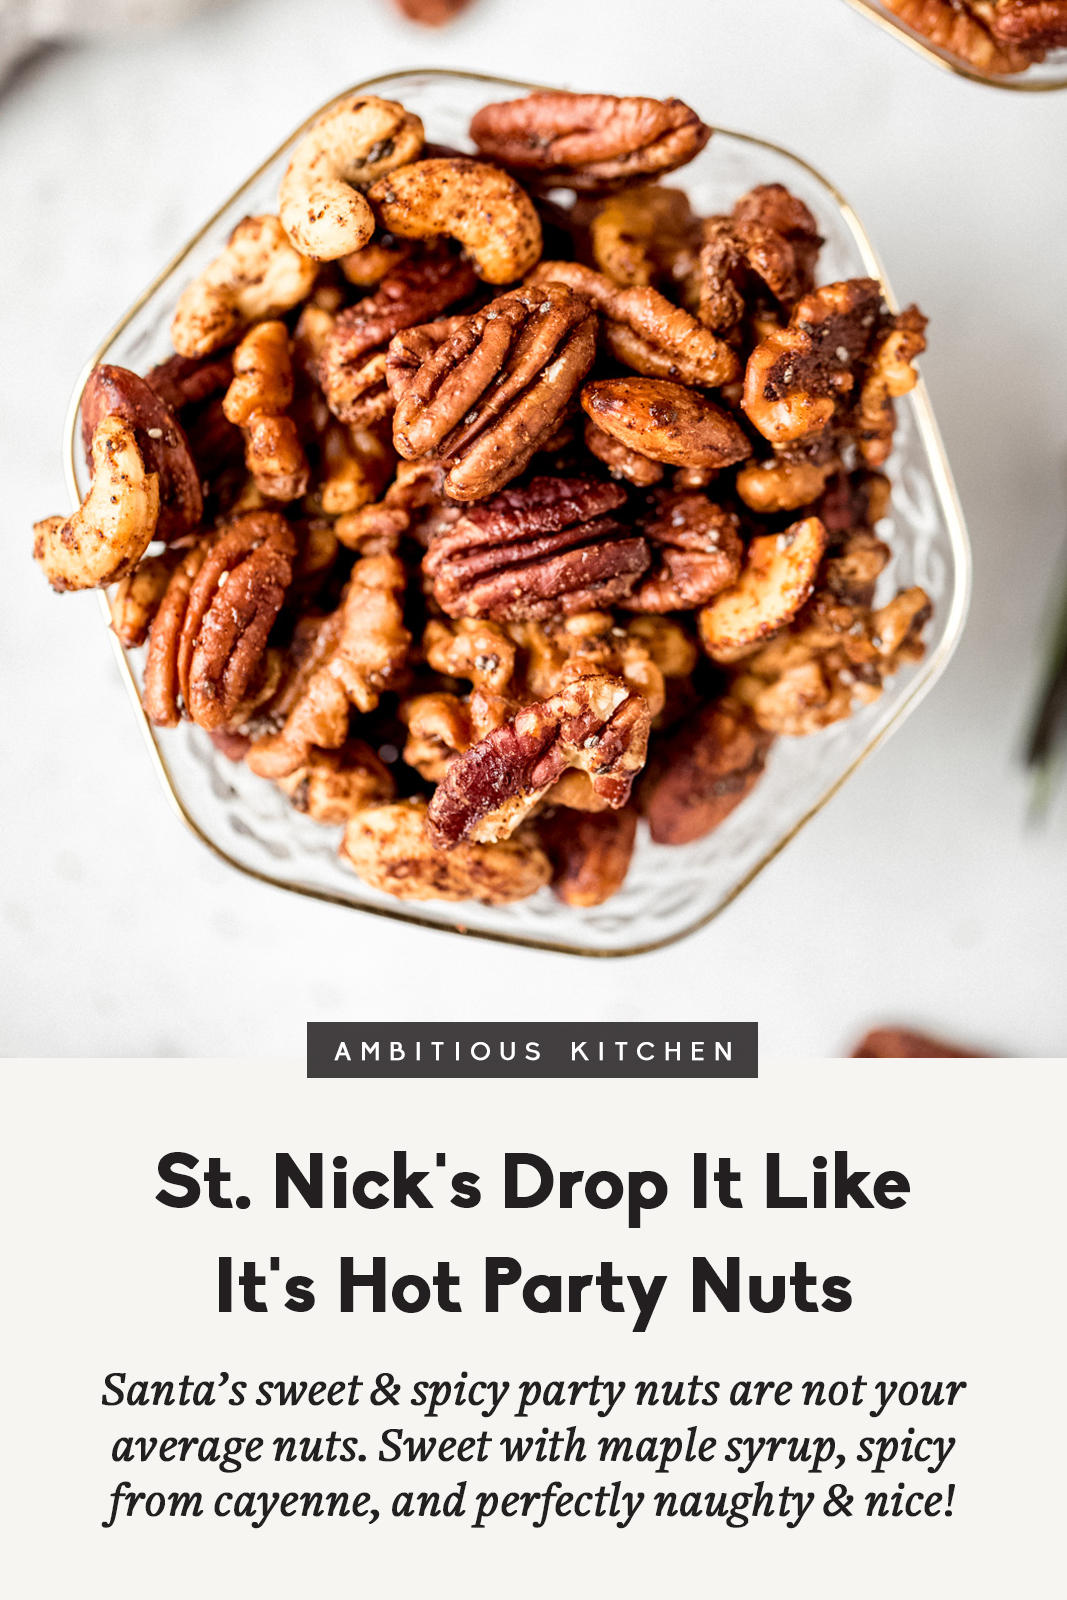 sweet and spicy nuts in a bowl with a title underneath